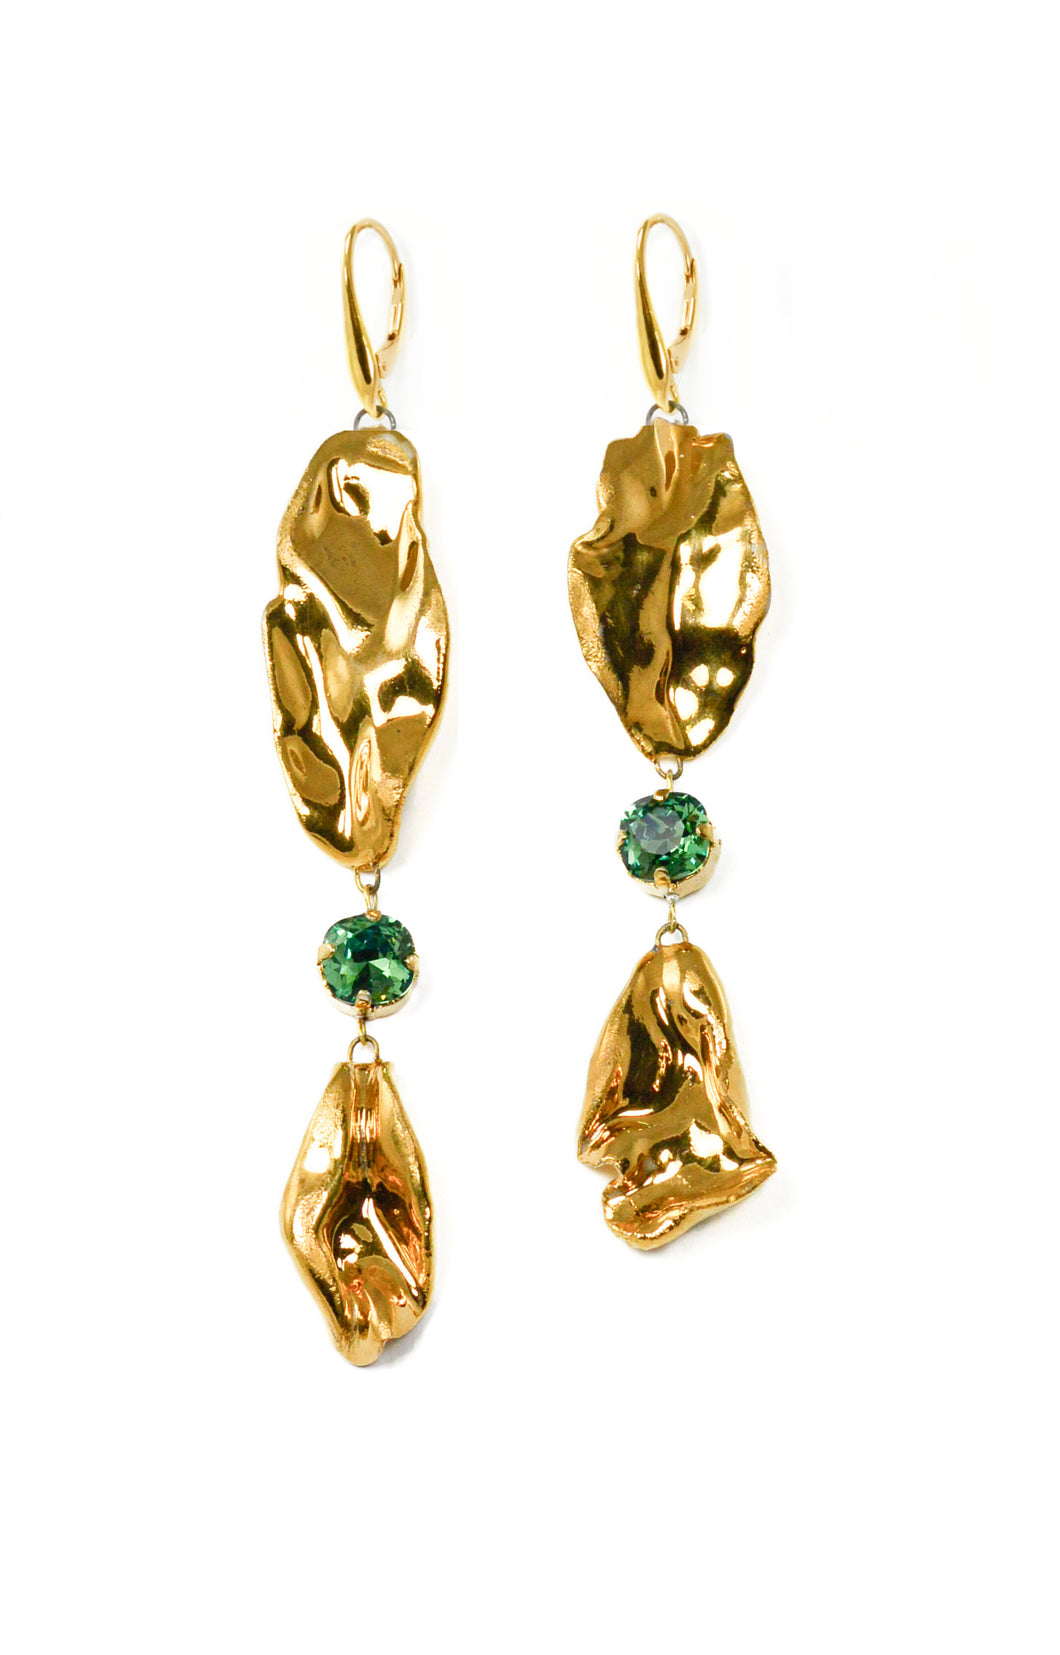 Gold Porcelain Earrings With Swarovski